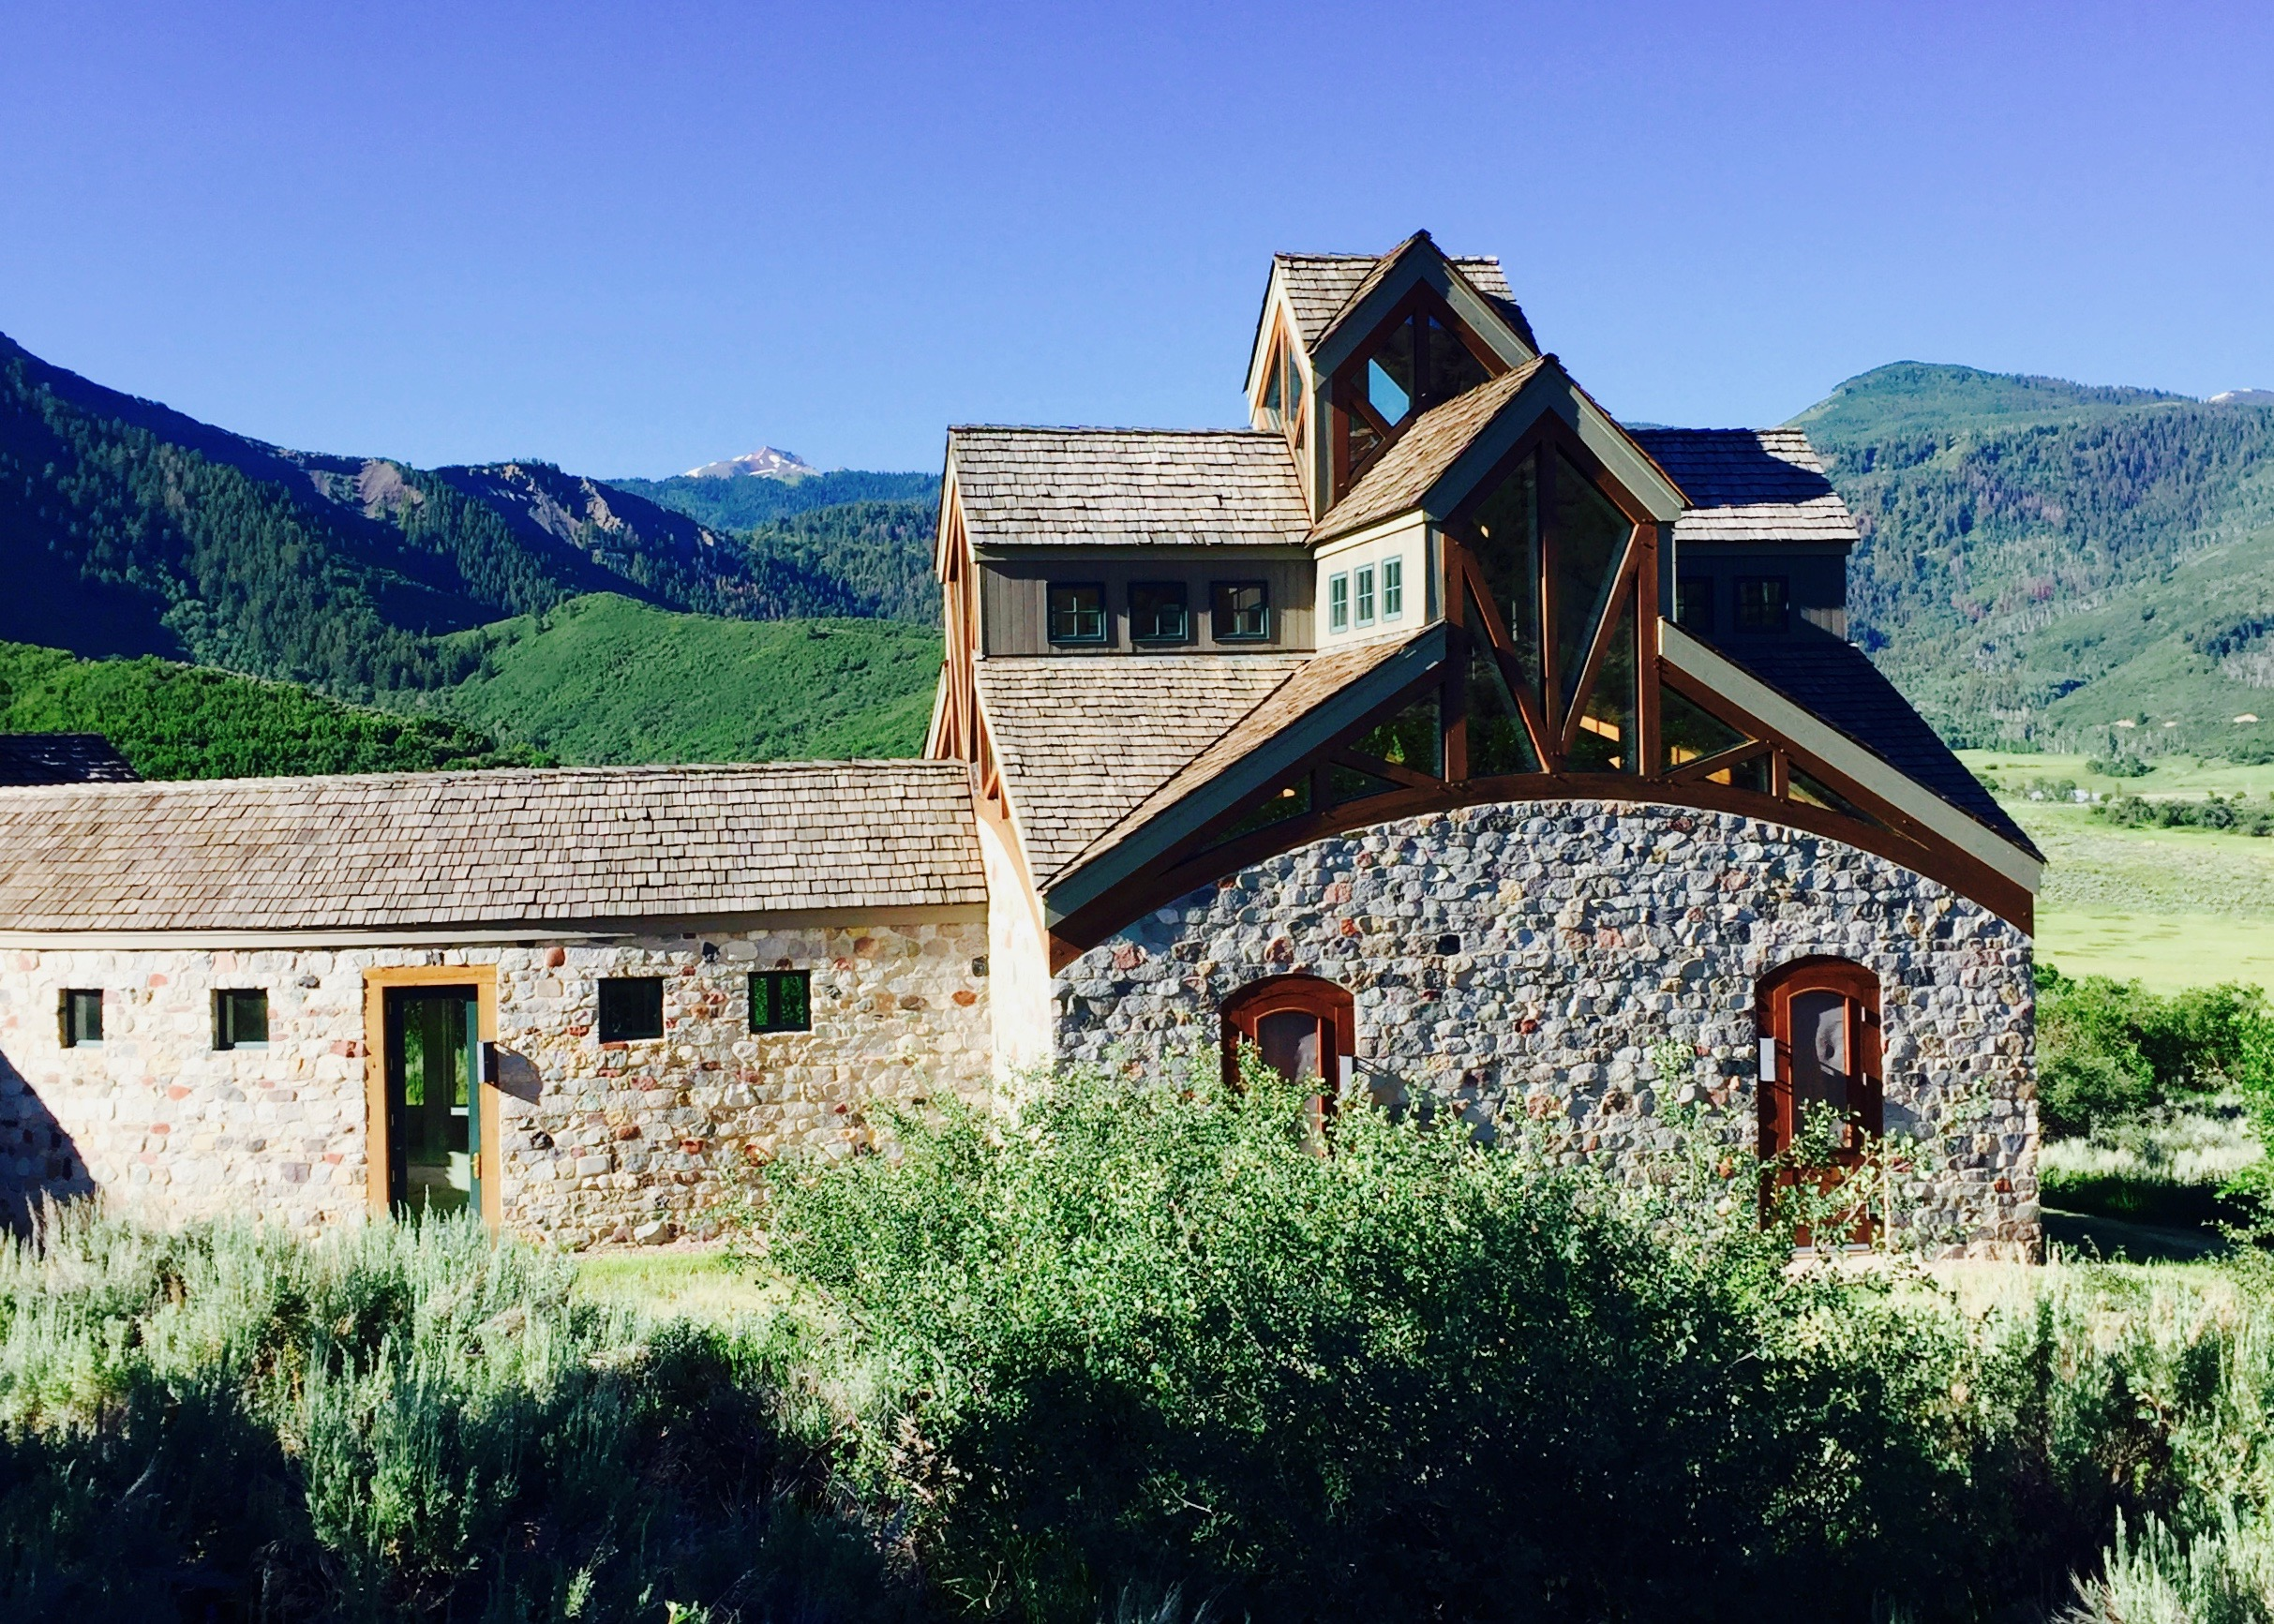 Snowmas Retreat House, St. Benedict's Monastery, Snowmass, CO. (N. Miles-Yepez, 2016)